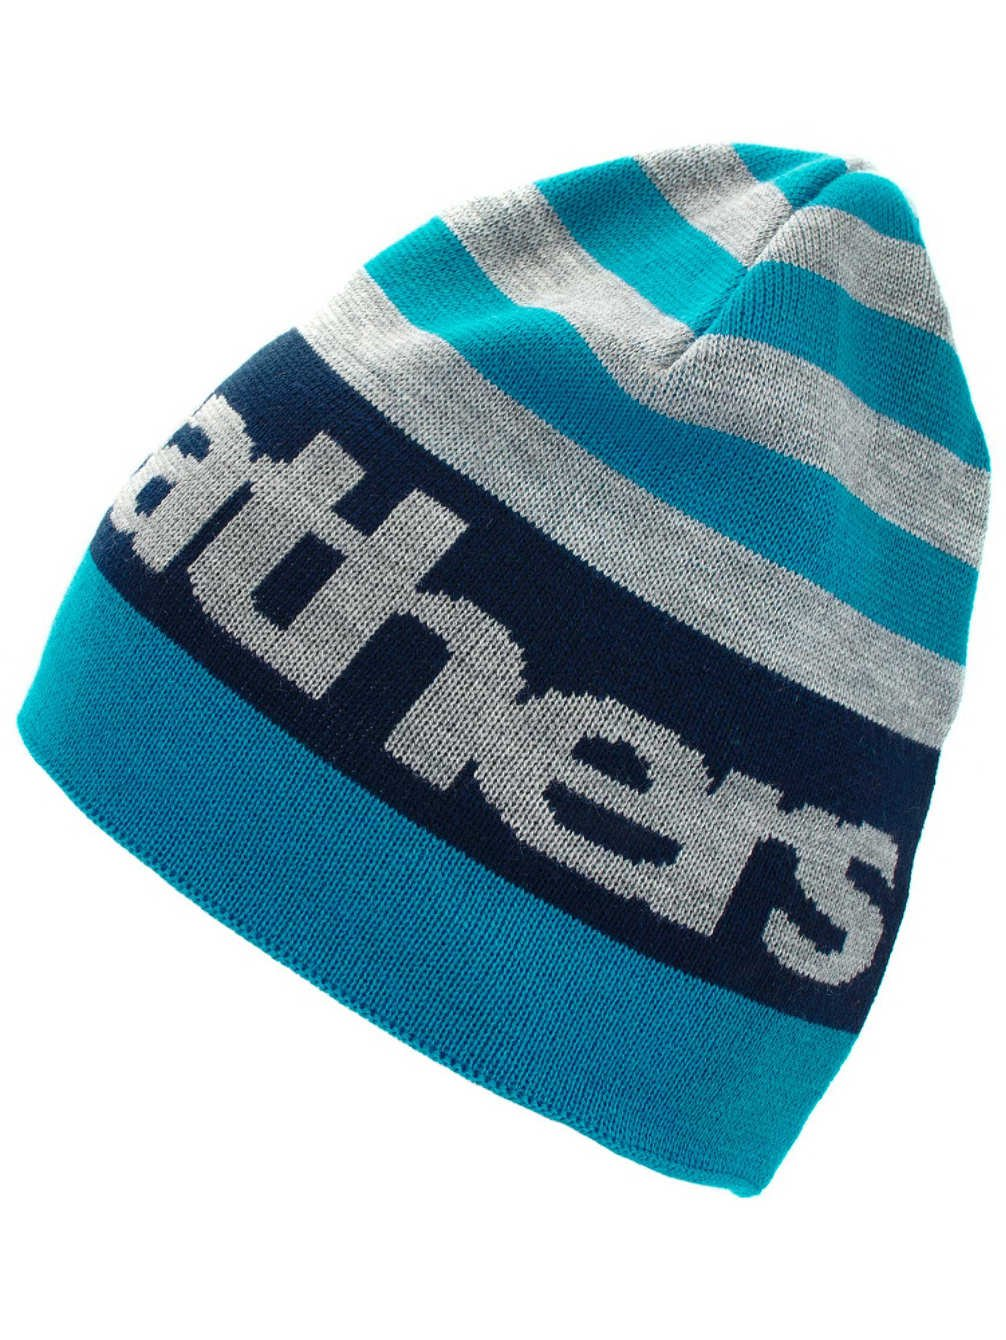 Horsefeathers Kerry Kids Beanie (Navy), Color: Navy, Size: OS